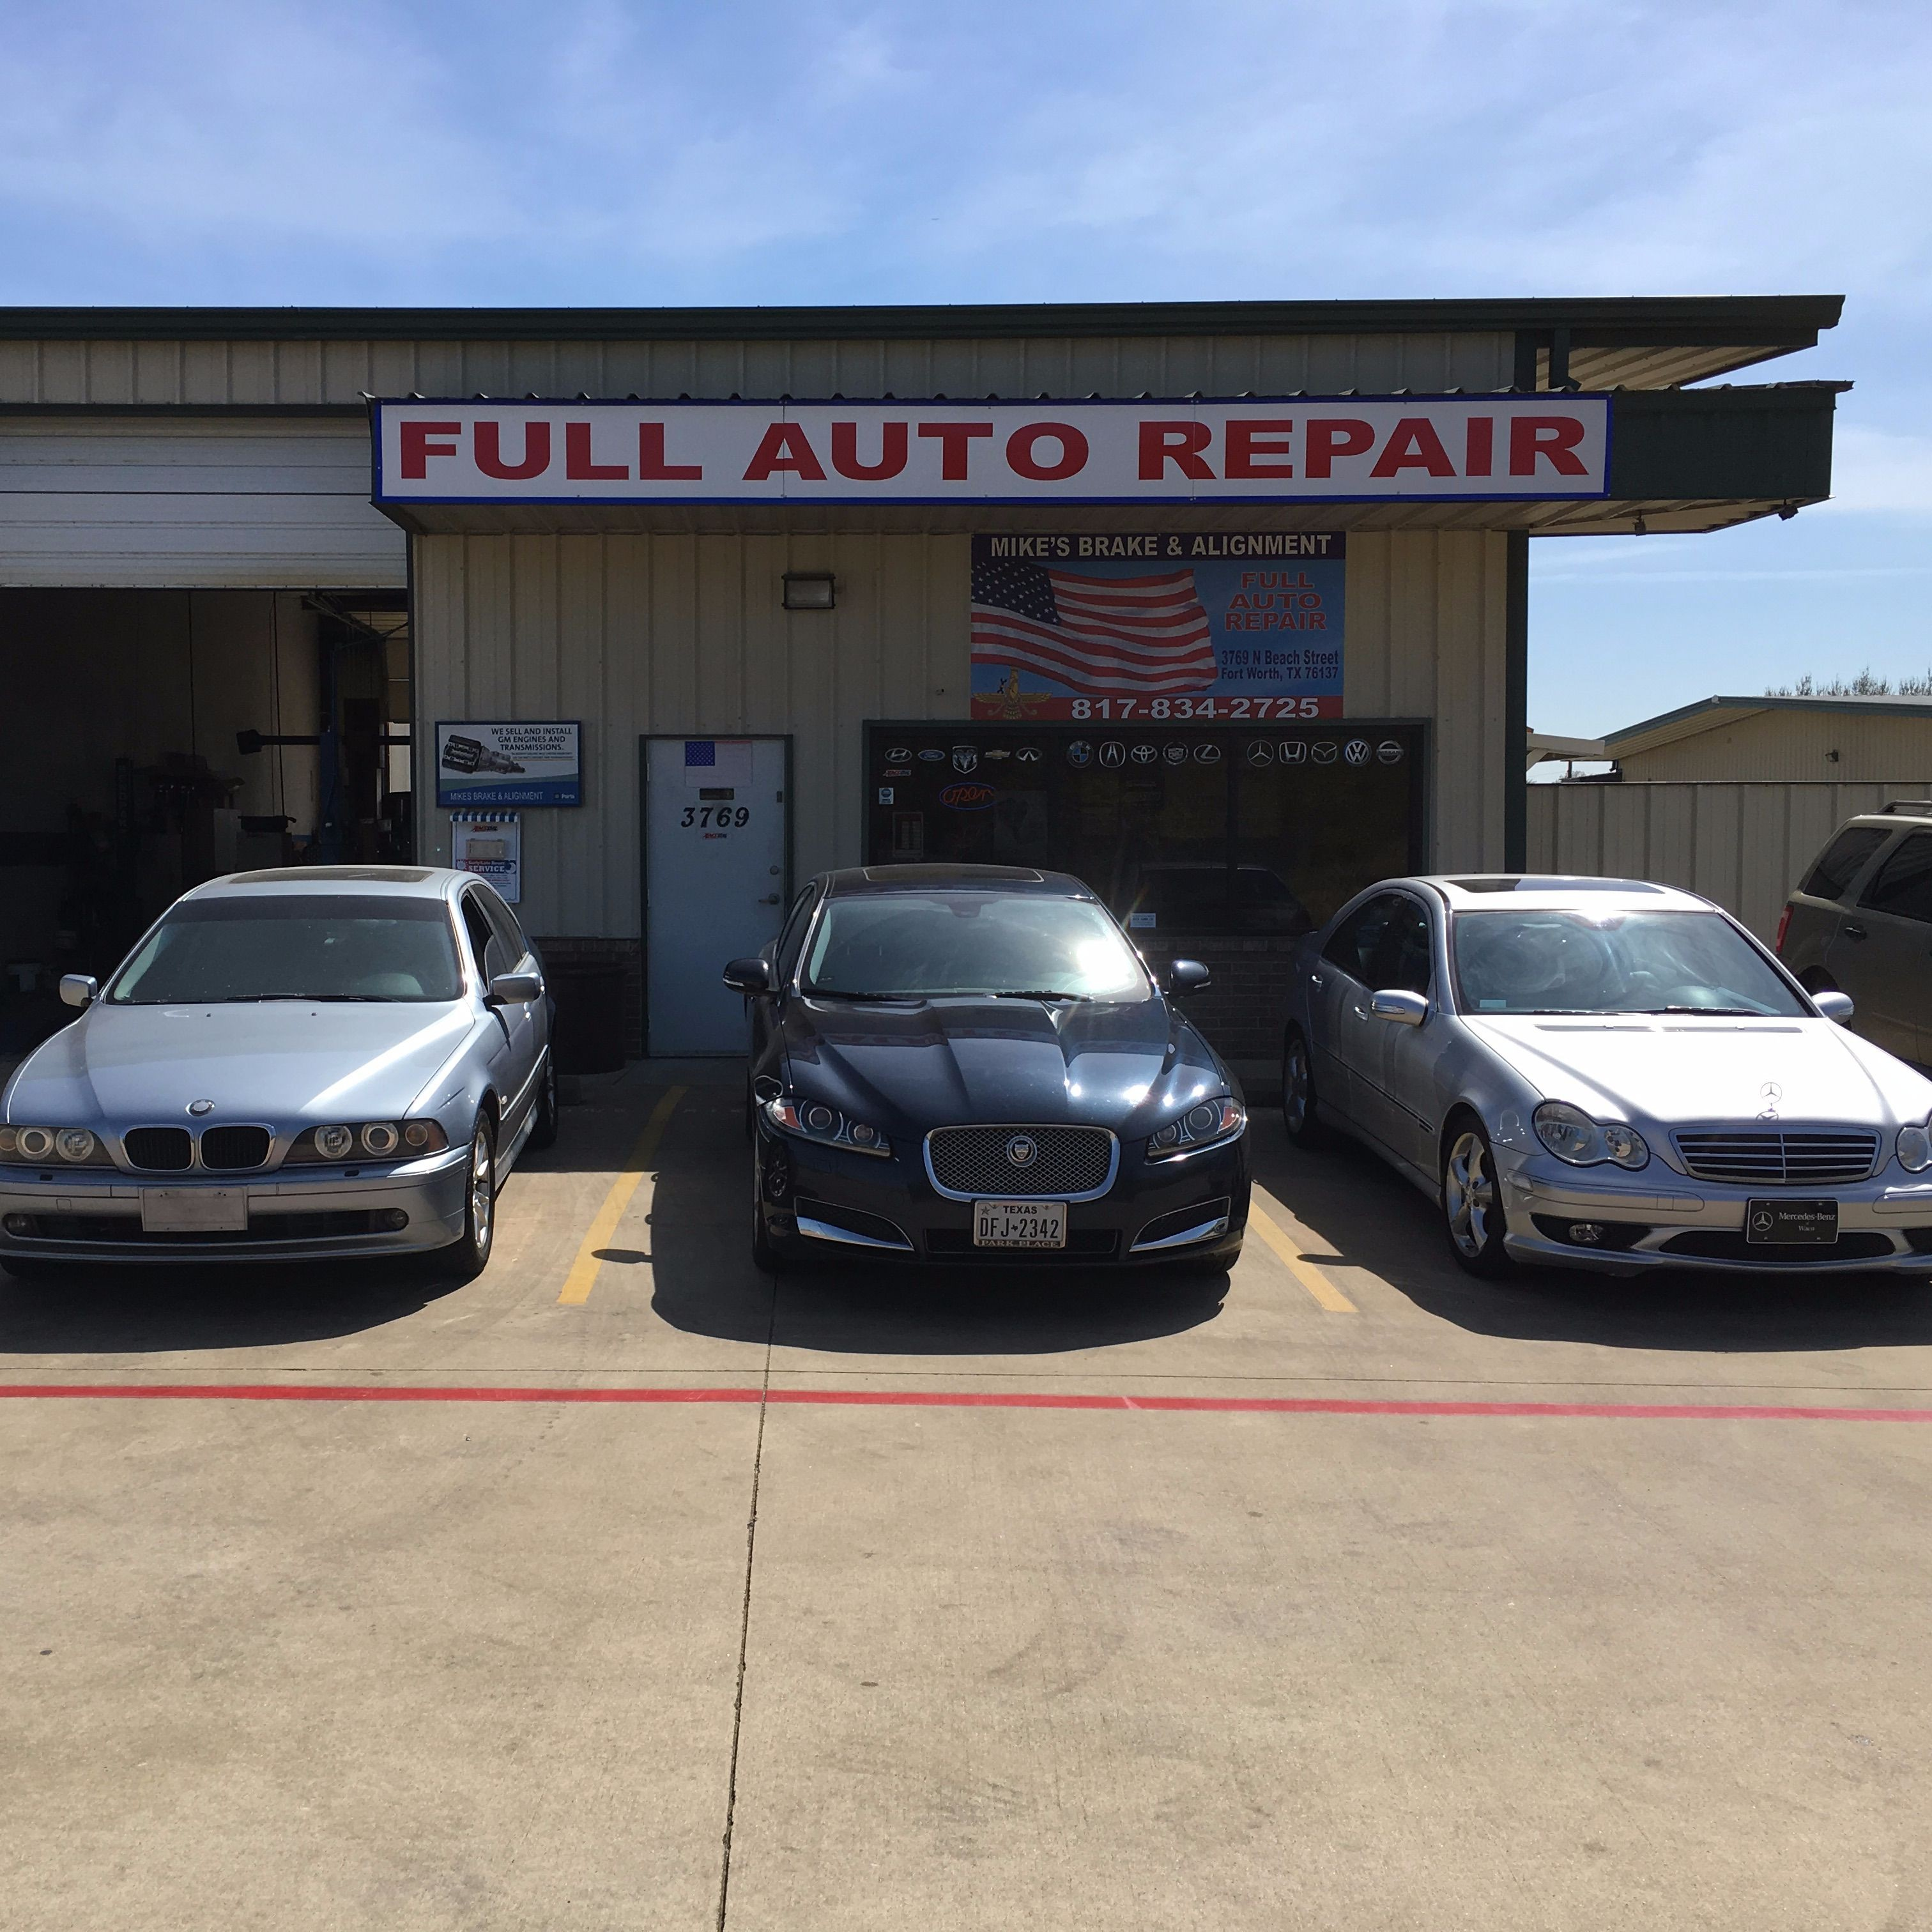 Mike's Brake & Alignment Shop